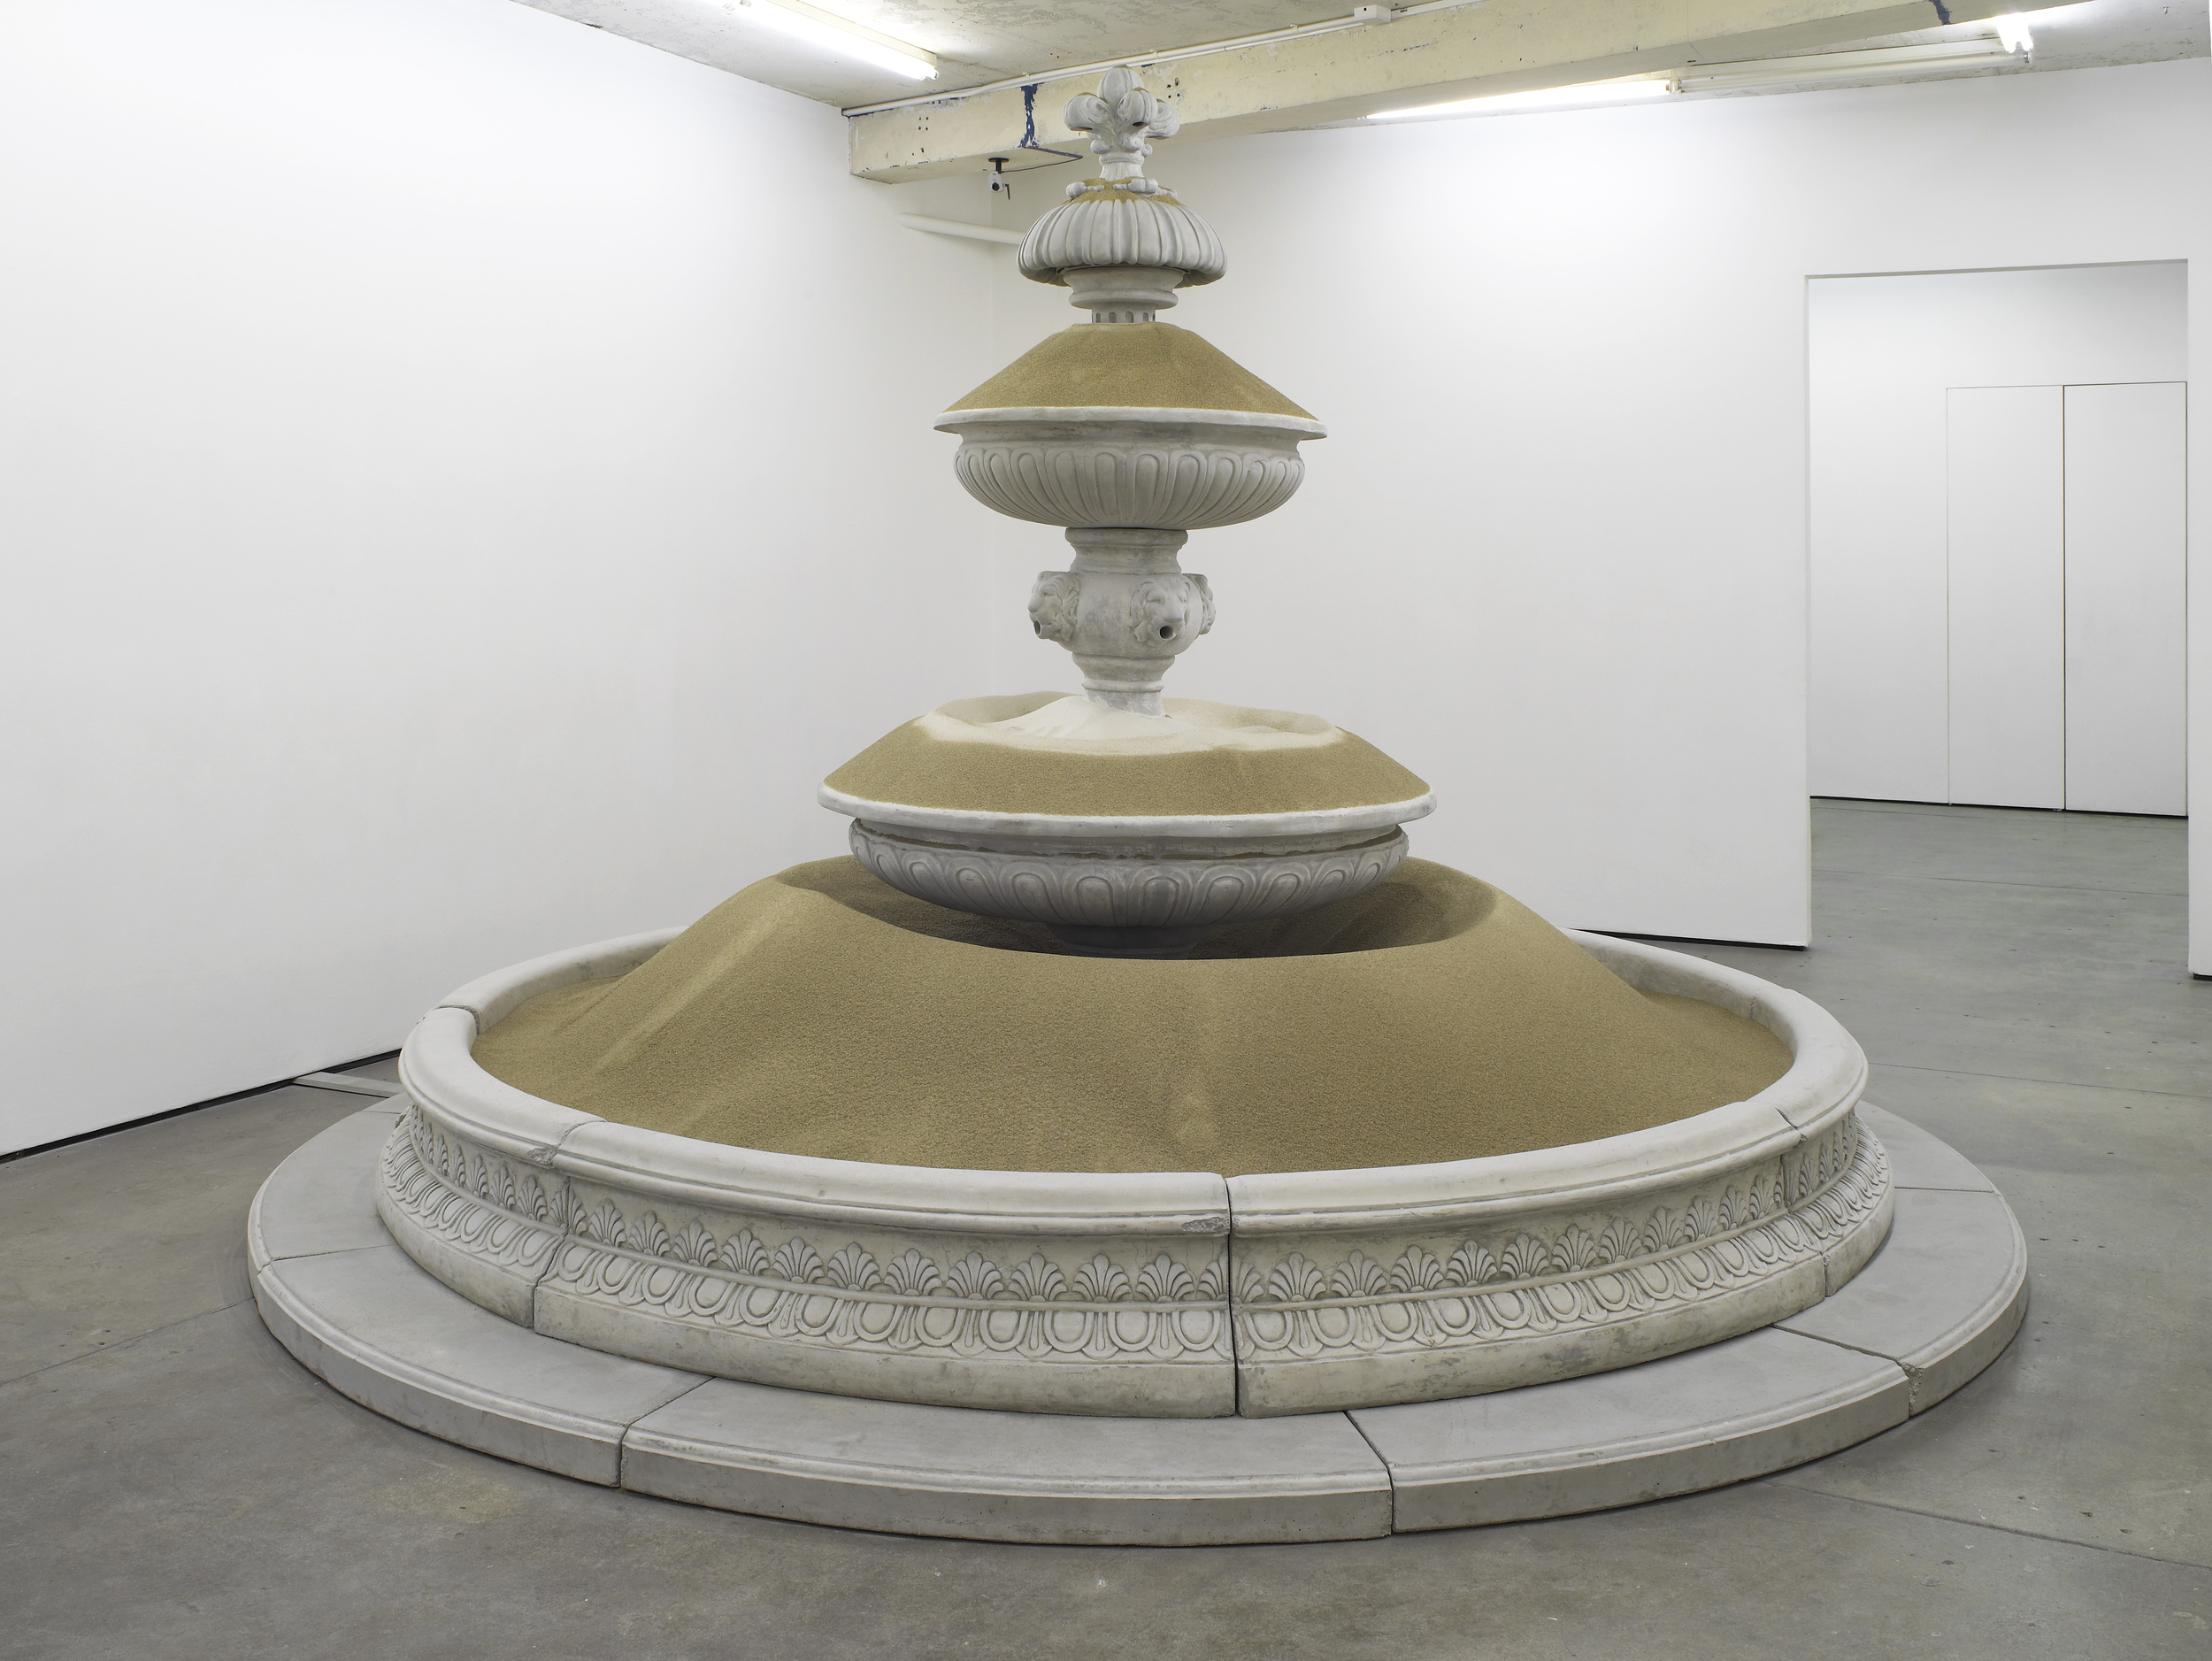 Sandfountain   2012   Prefabricated concrete fountain, sand   250 x 400 x 400 cm / 98.4 x 157.4 x 157.4 in